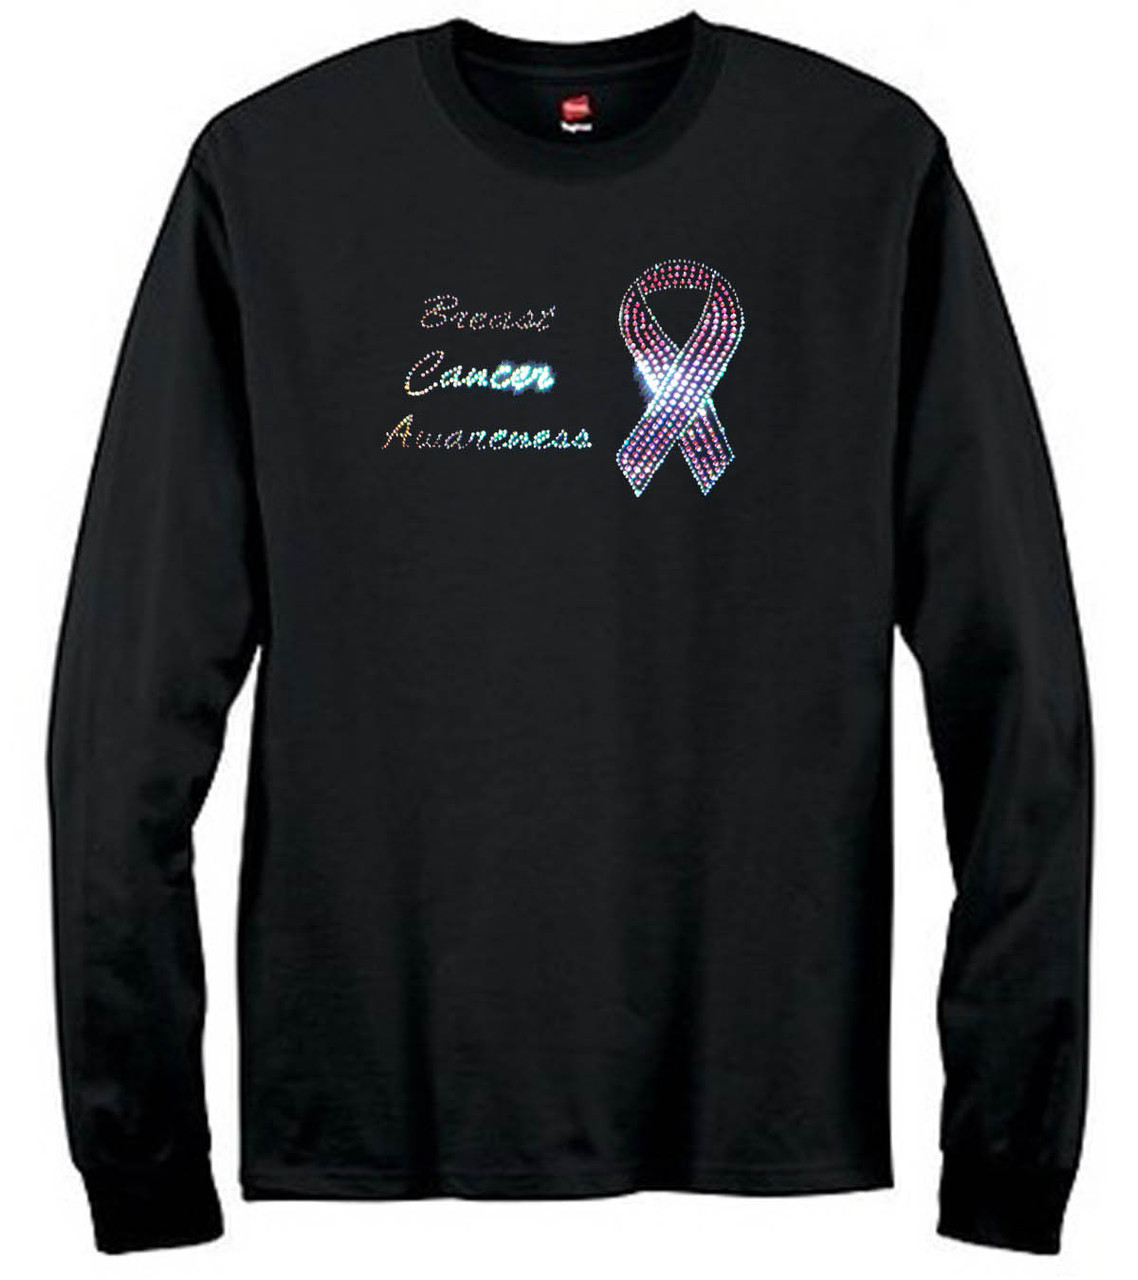 Breast Cancer Awareness Ribbon Rhinestone T-Shirt